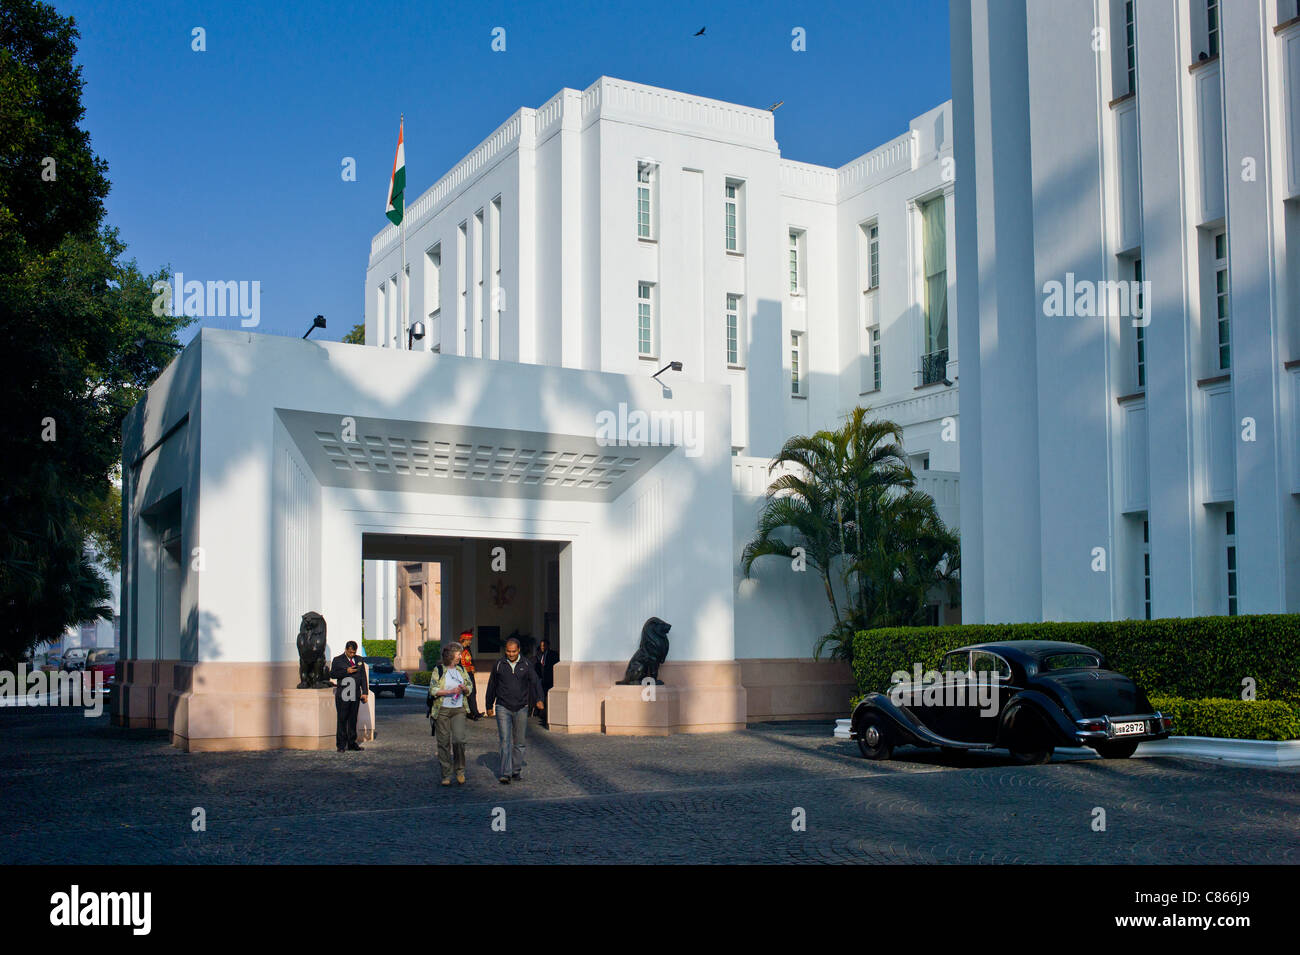 Tourists at The Imperial Hotel with its luxury colonial elegance, New Delhi, India - Stock Image